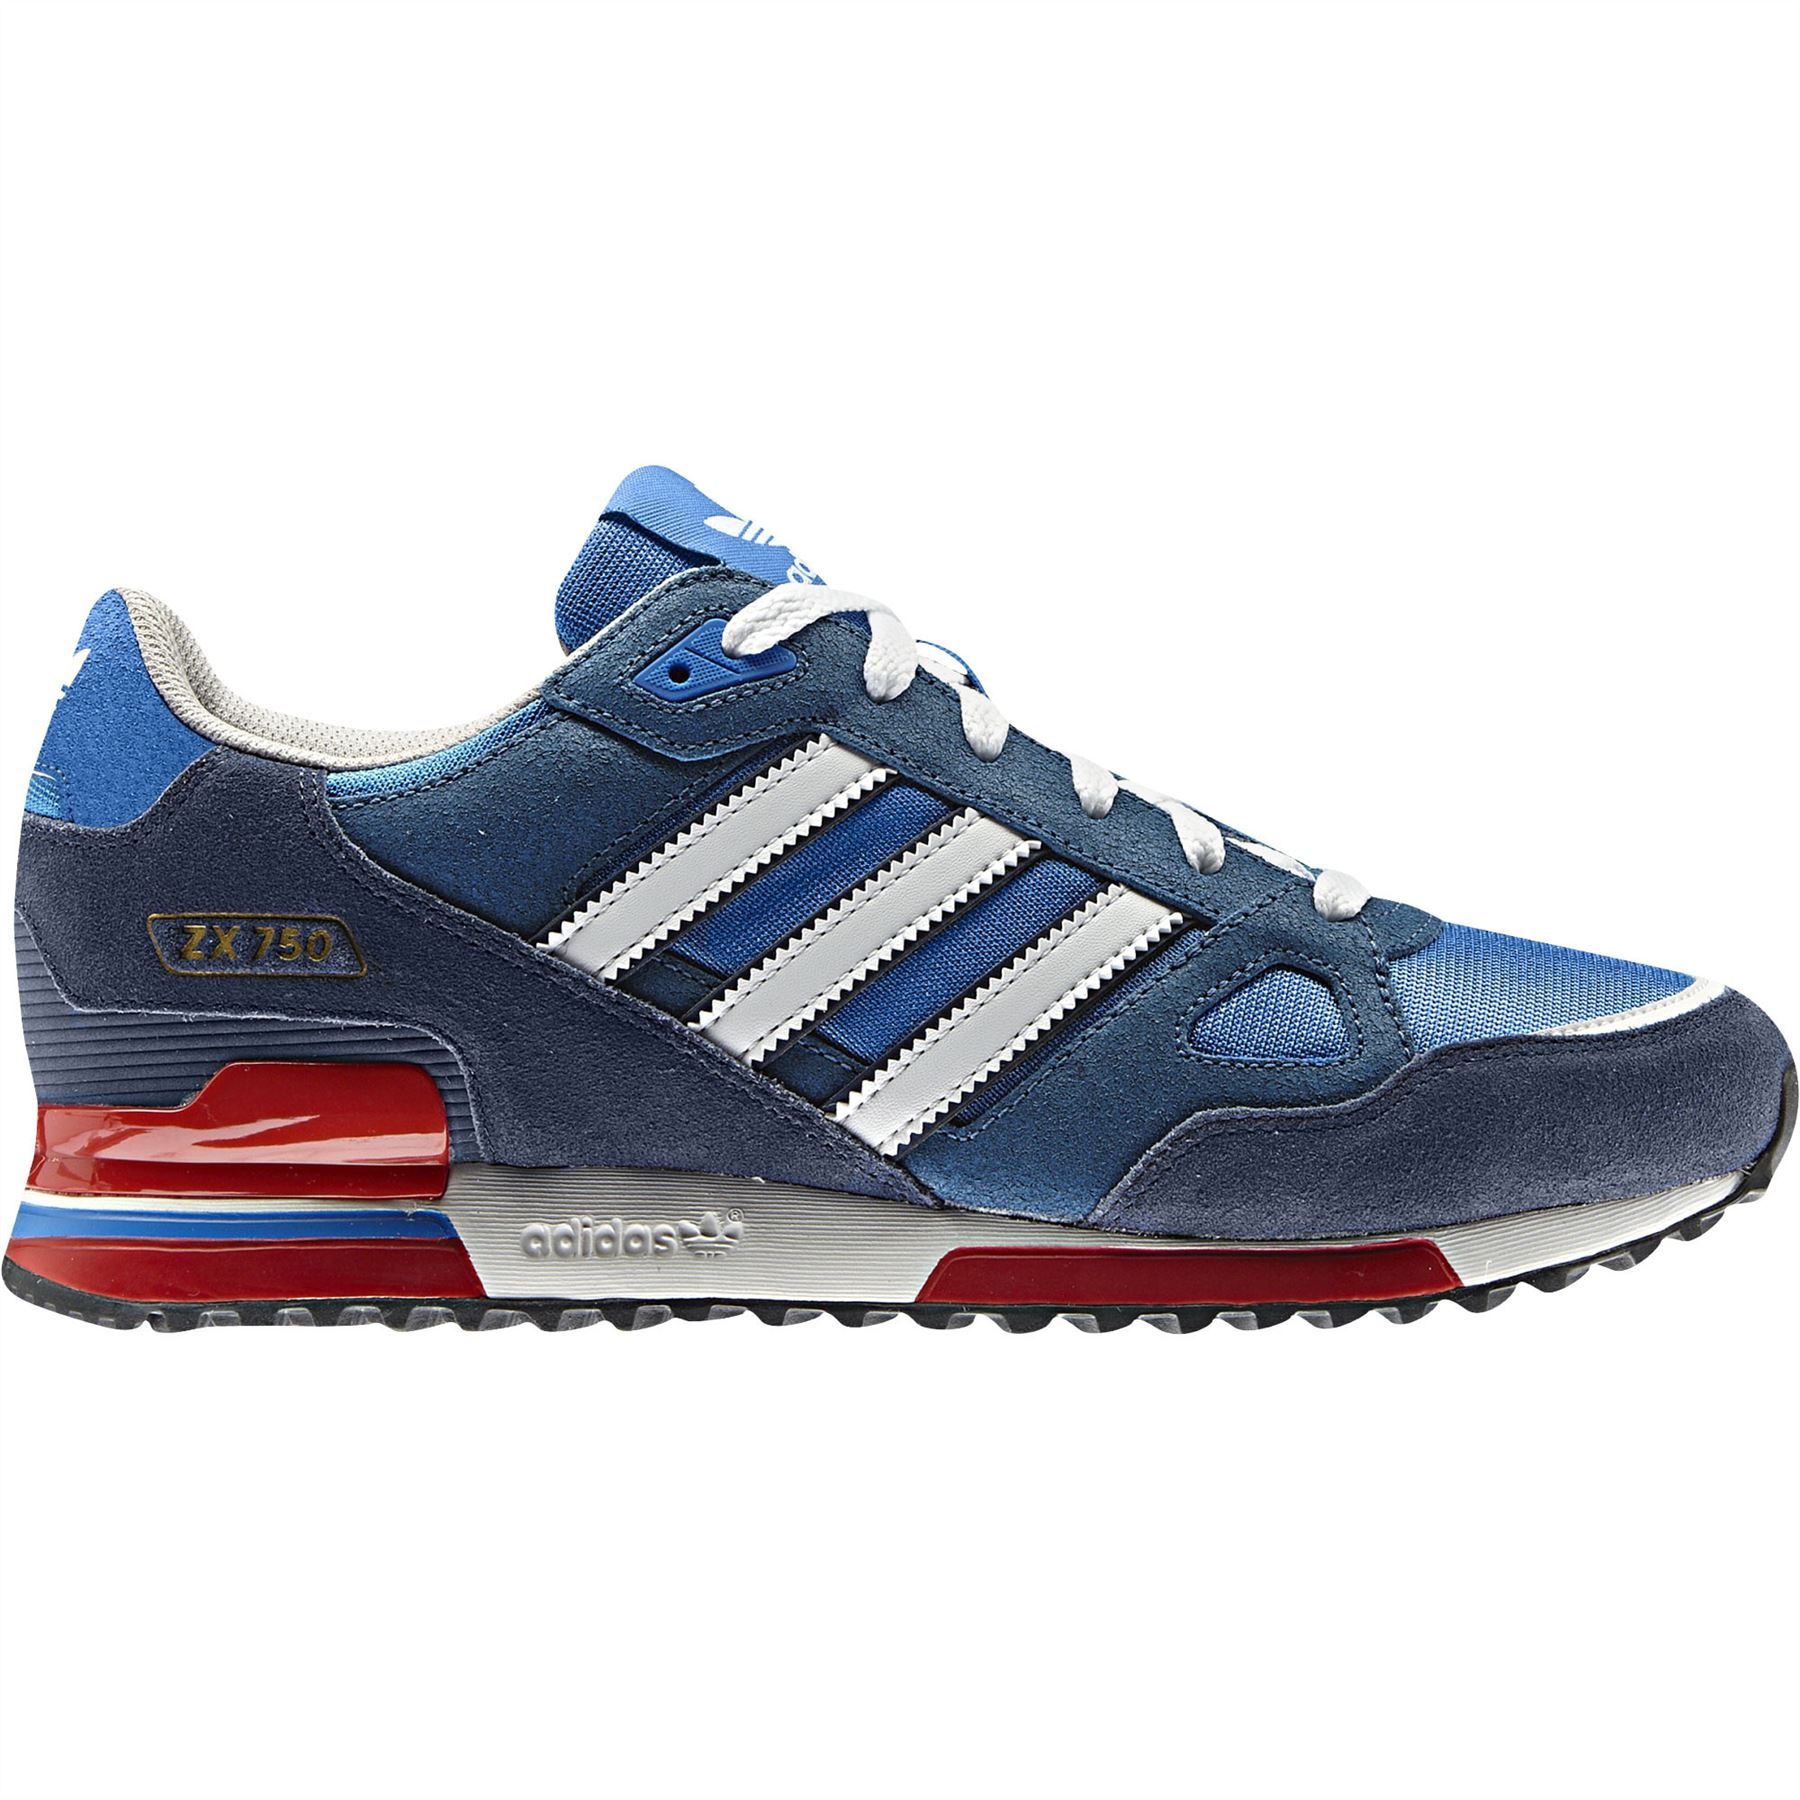 sale retailer 34b7b c9e42 ADIDAS ORIGINALS ZX 750 MENS RUNNING TRAINERS BLUE BLACK NAVY SNEAKERS SHOES  NEW   eBay